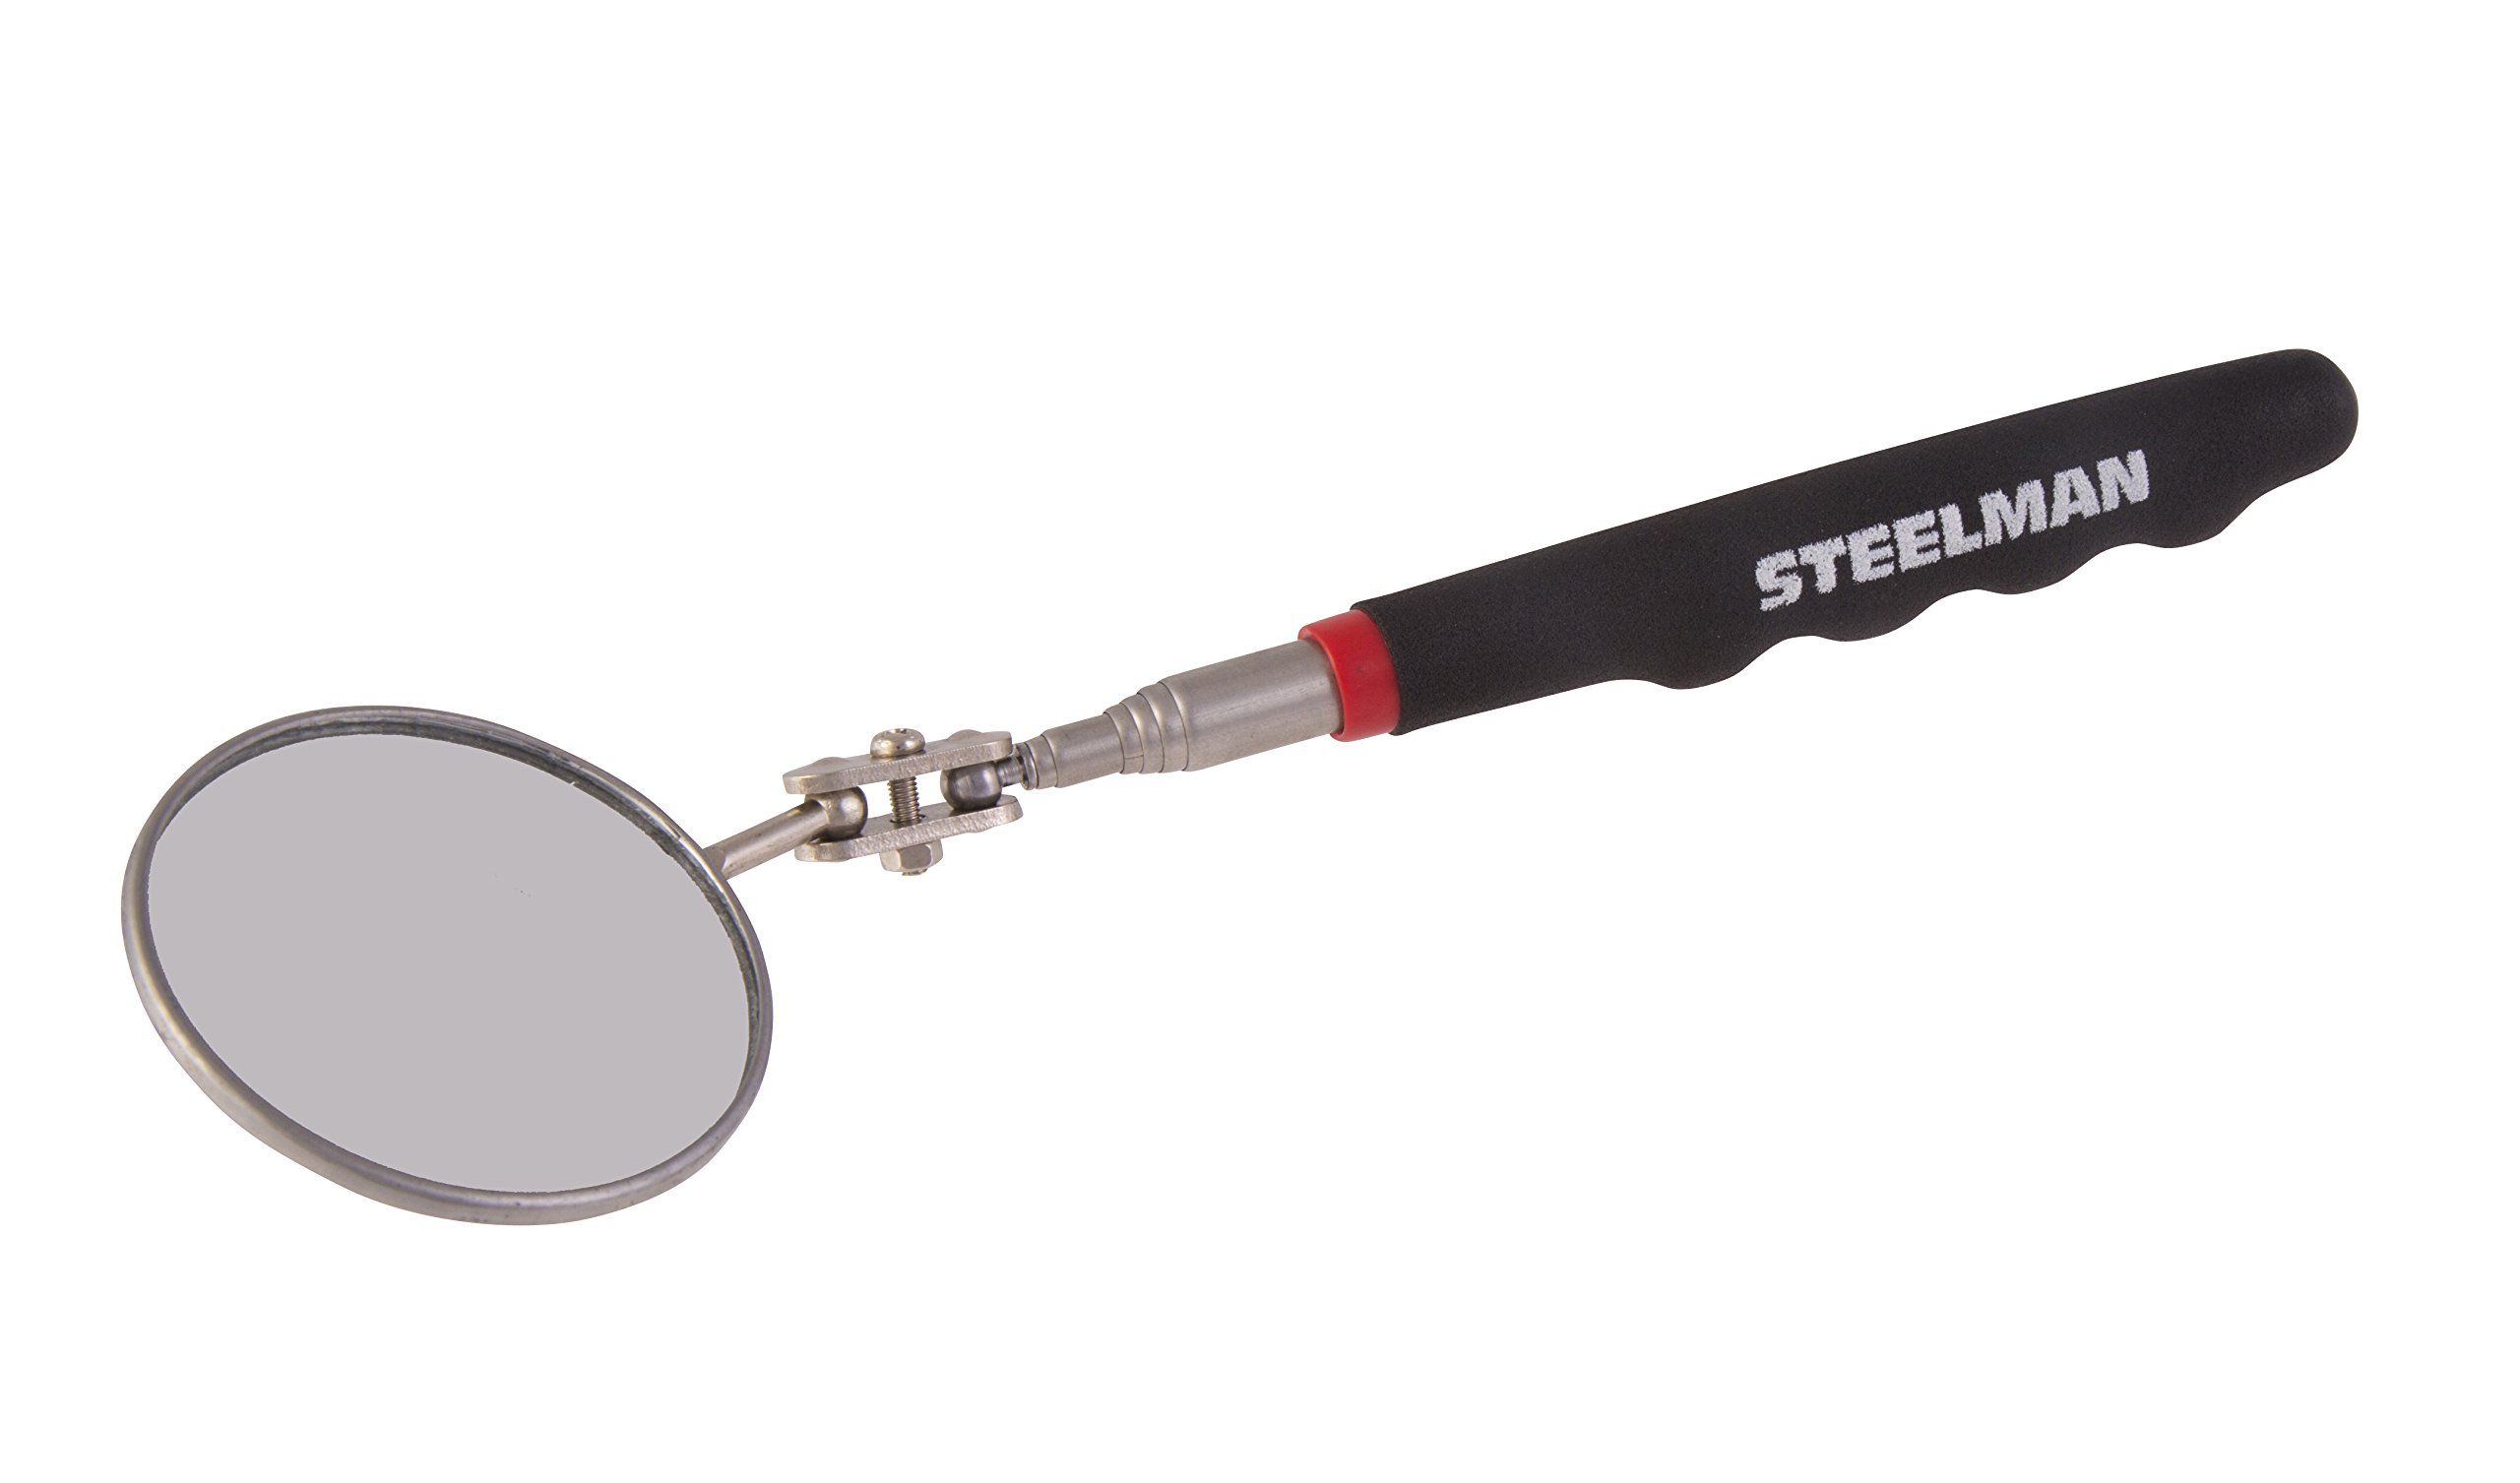 STEELMAN 41819 36-Inch Telescoping 2.25-Inch Round Inspection Mirror